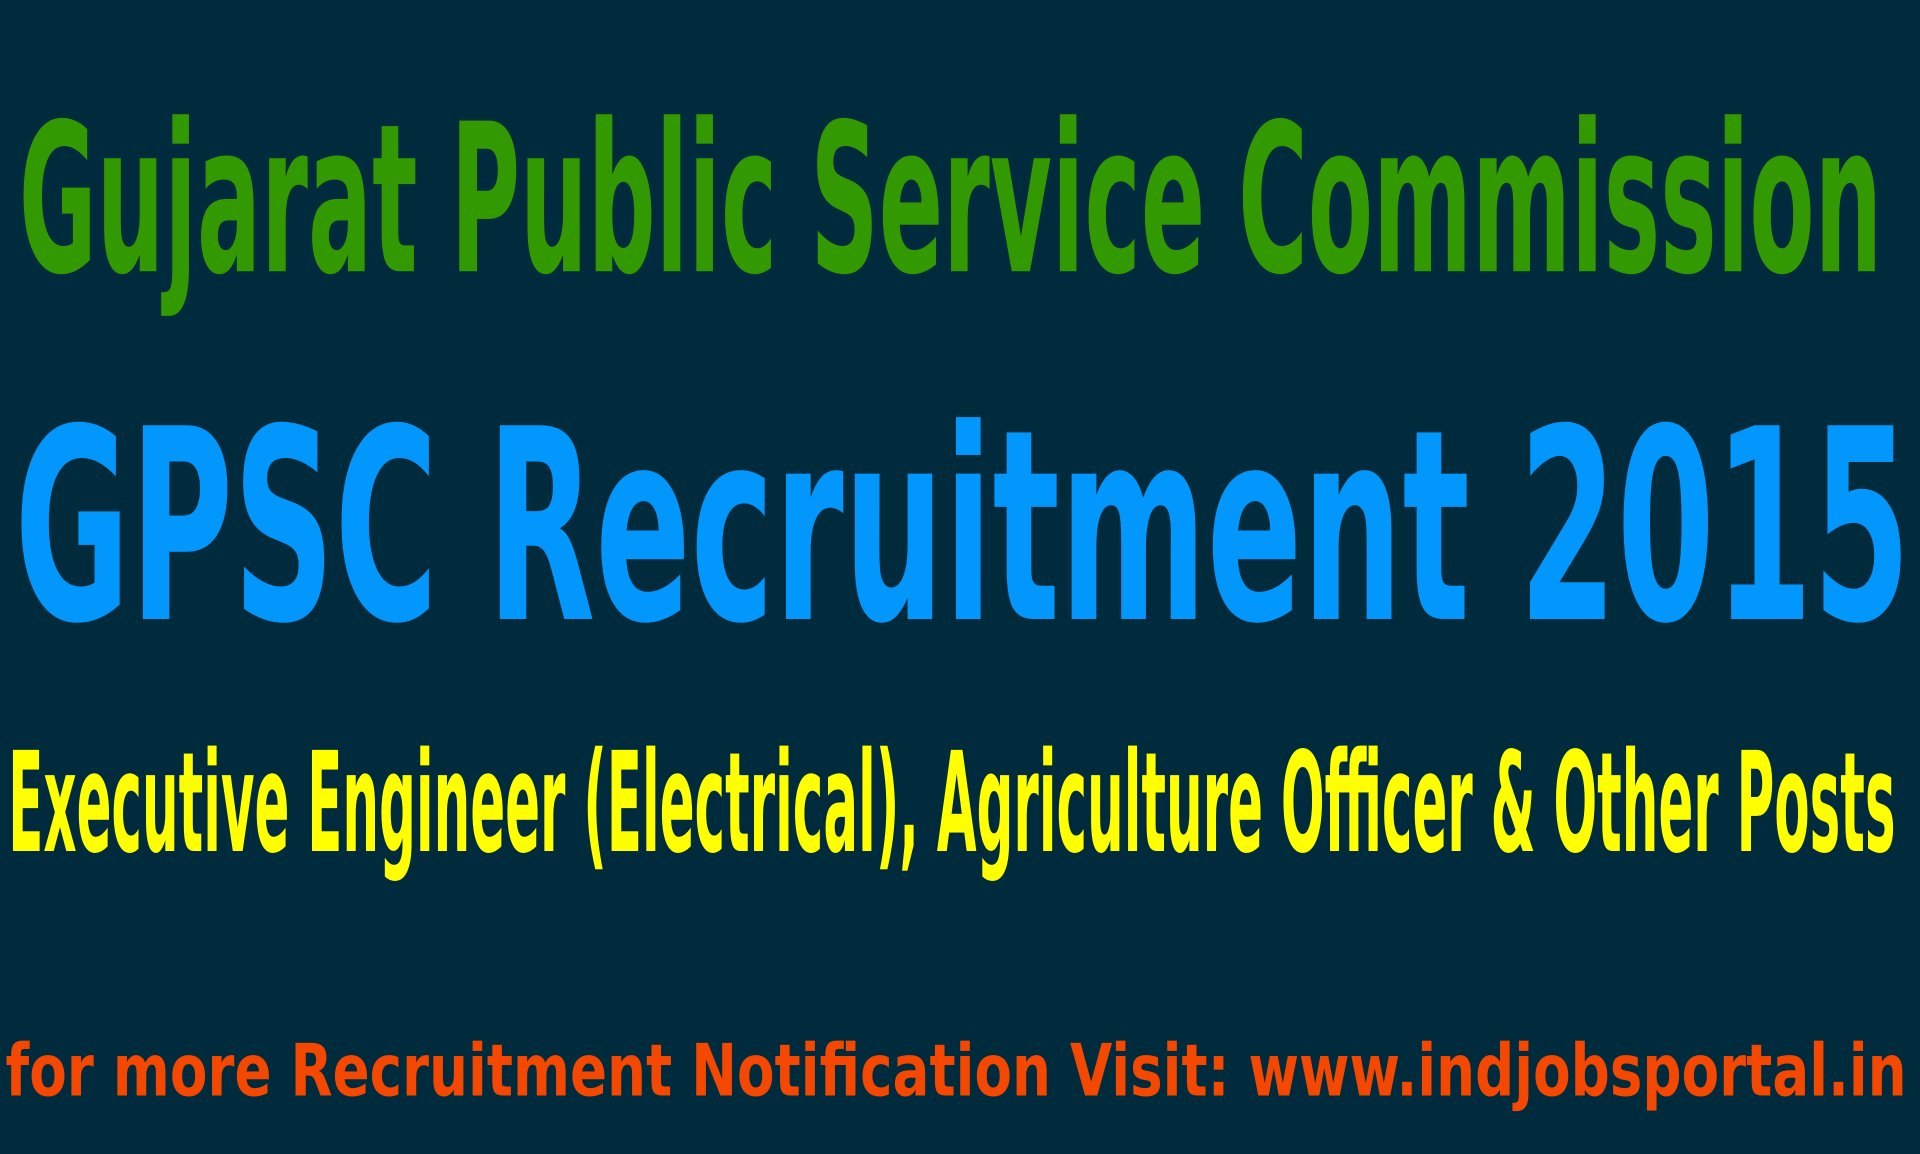 GPSC Recruitment 2015 For 770 Executive Engineer (Electrical), Agriculture Officer & Other Posts